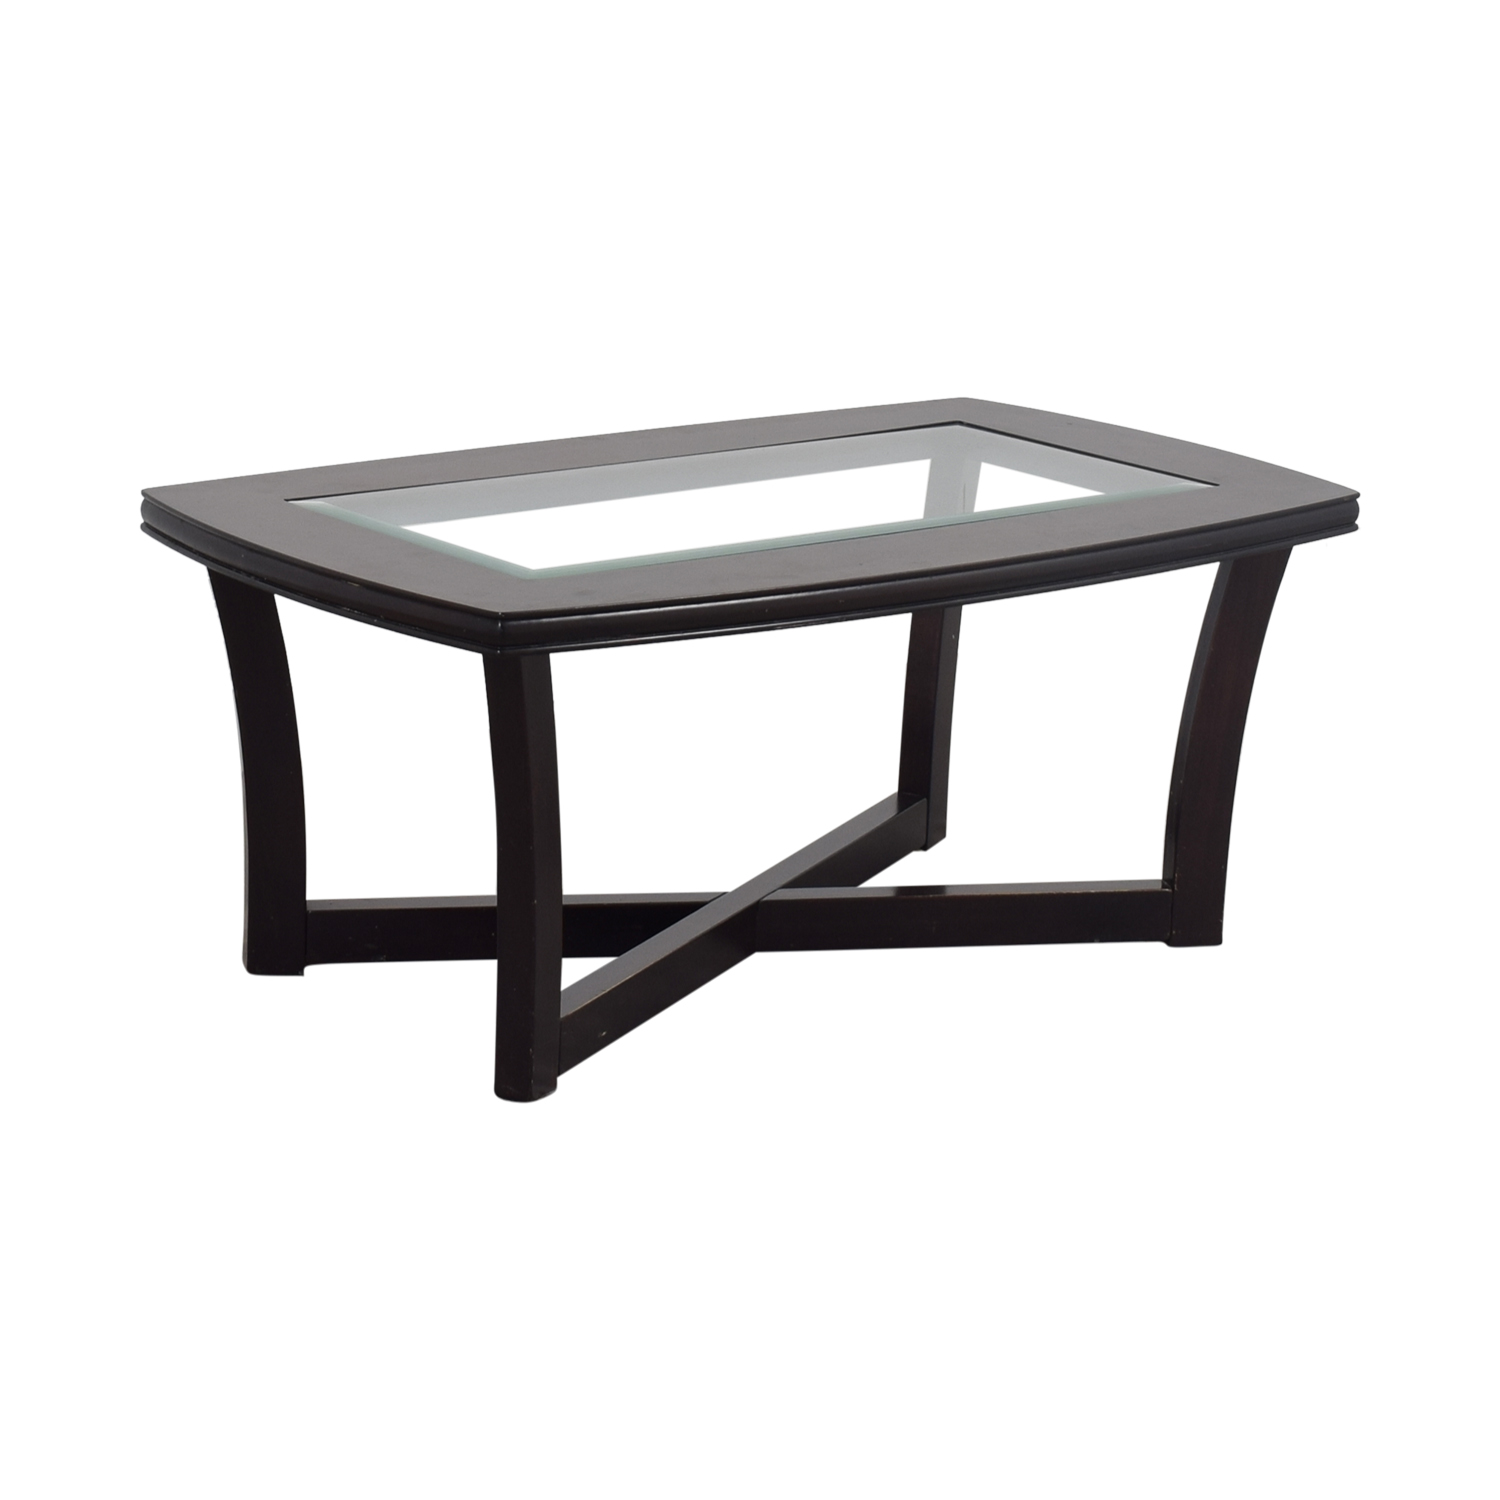 75 OFF Ashley Furniture Ashley Furniture Tempered Glass and